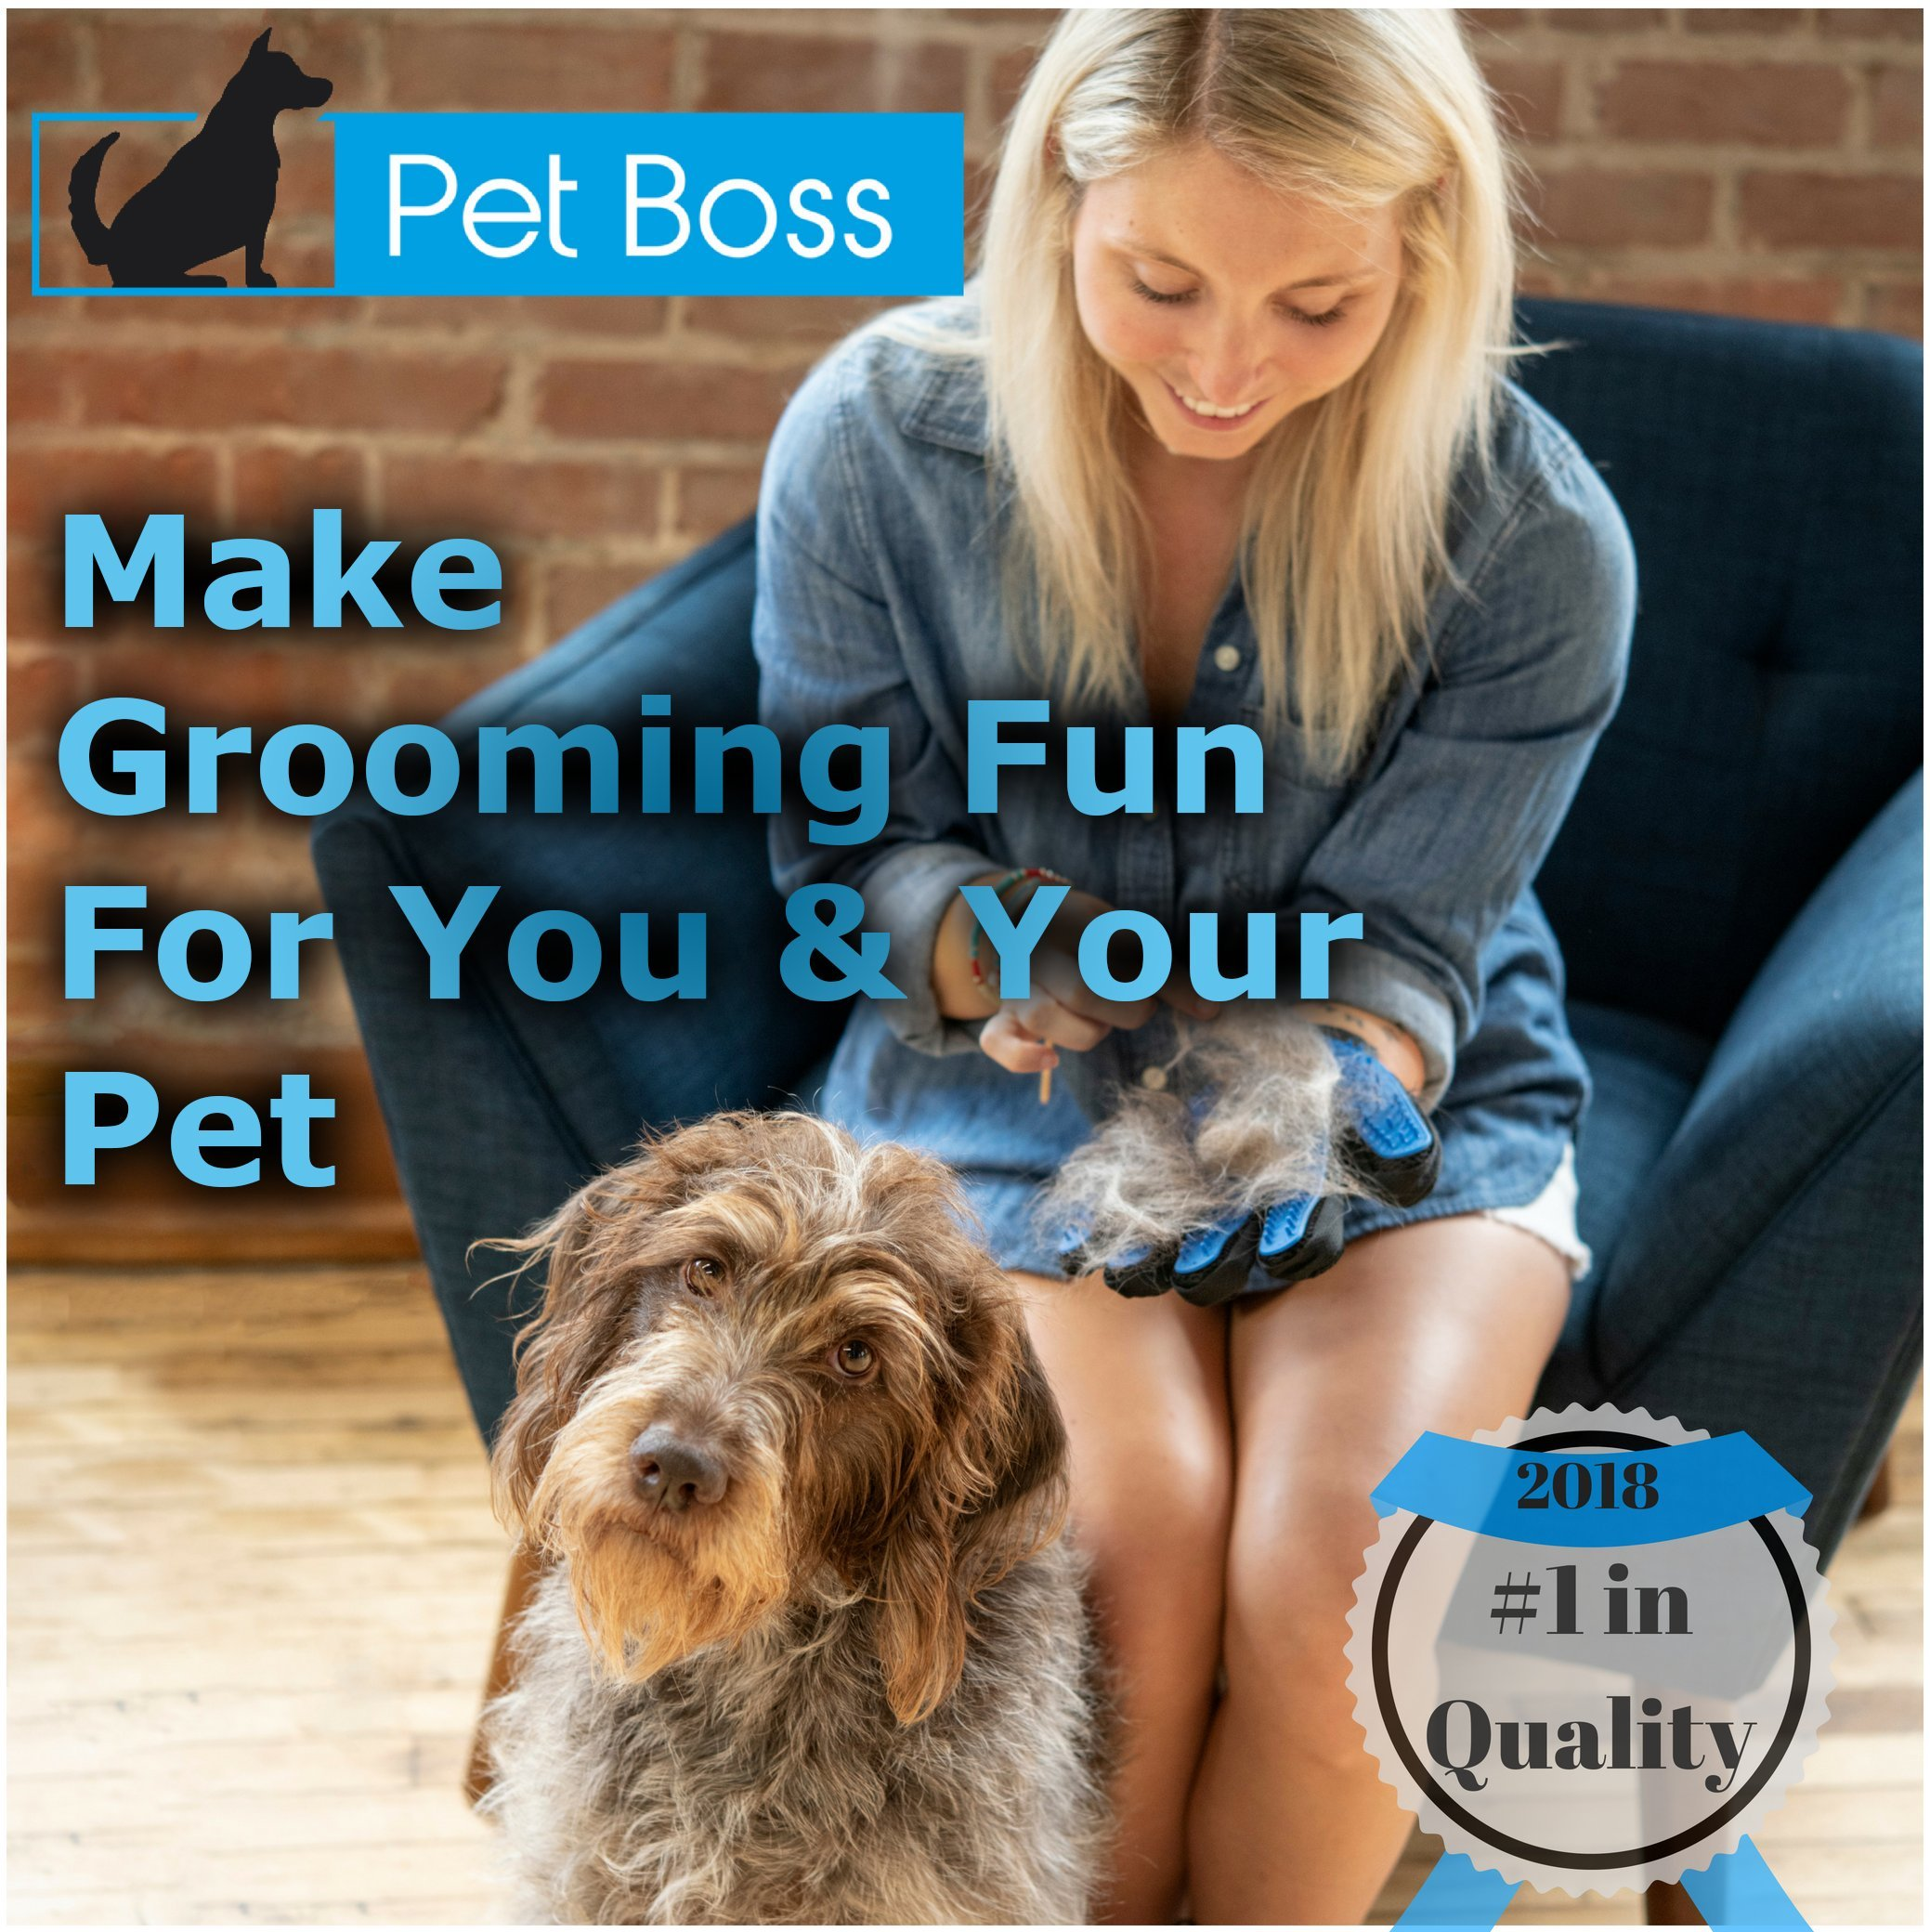 Pet Grooming Glove - Gentle Deshedding Brush Glove - Efficient Pet Hair Remover Mitt - Massage Tool with Enhanced Five Finger Design - Perfect for Dogs & Cats with Long & Short Fur by Pet Boss Co (Image #2)